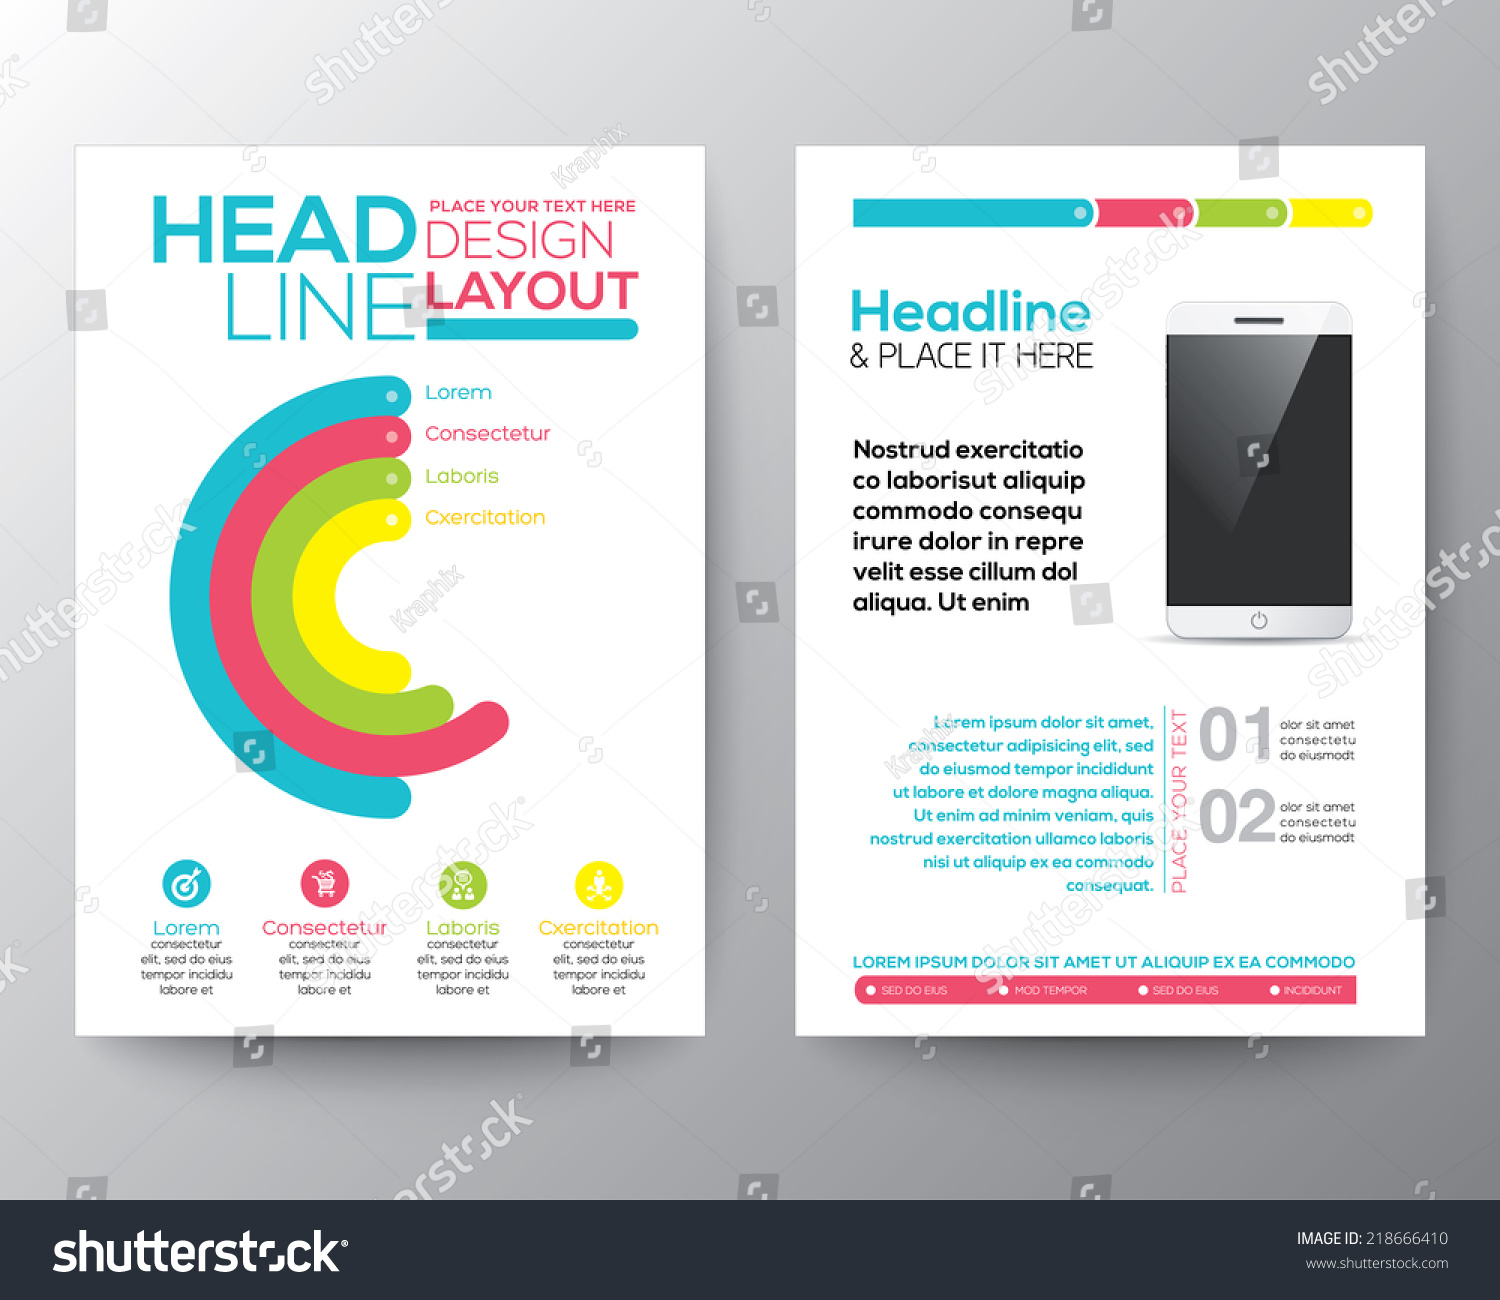 web design brochure template - graphic design layout smart phone concept stock vector